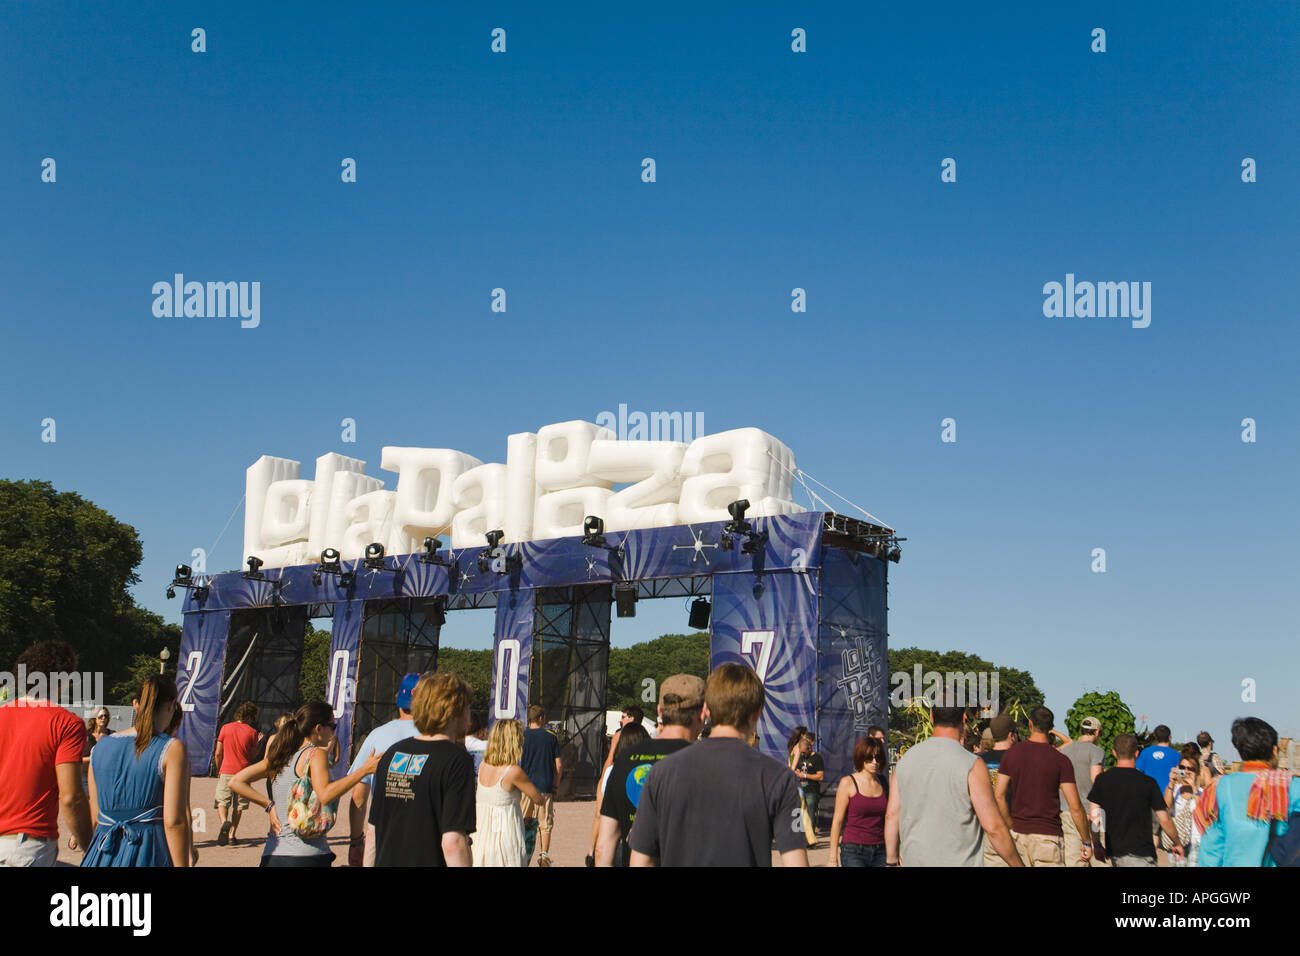 ILLINOIS Chicago Inflatable entrance to Lollapalooza musical concert in Grant Park crowd of young adults - Stock Image